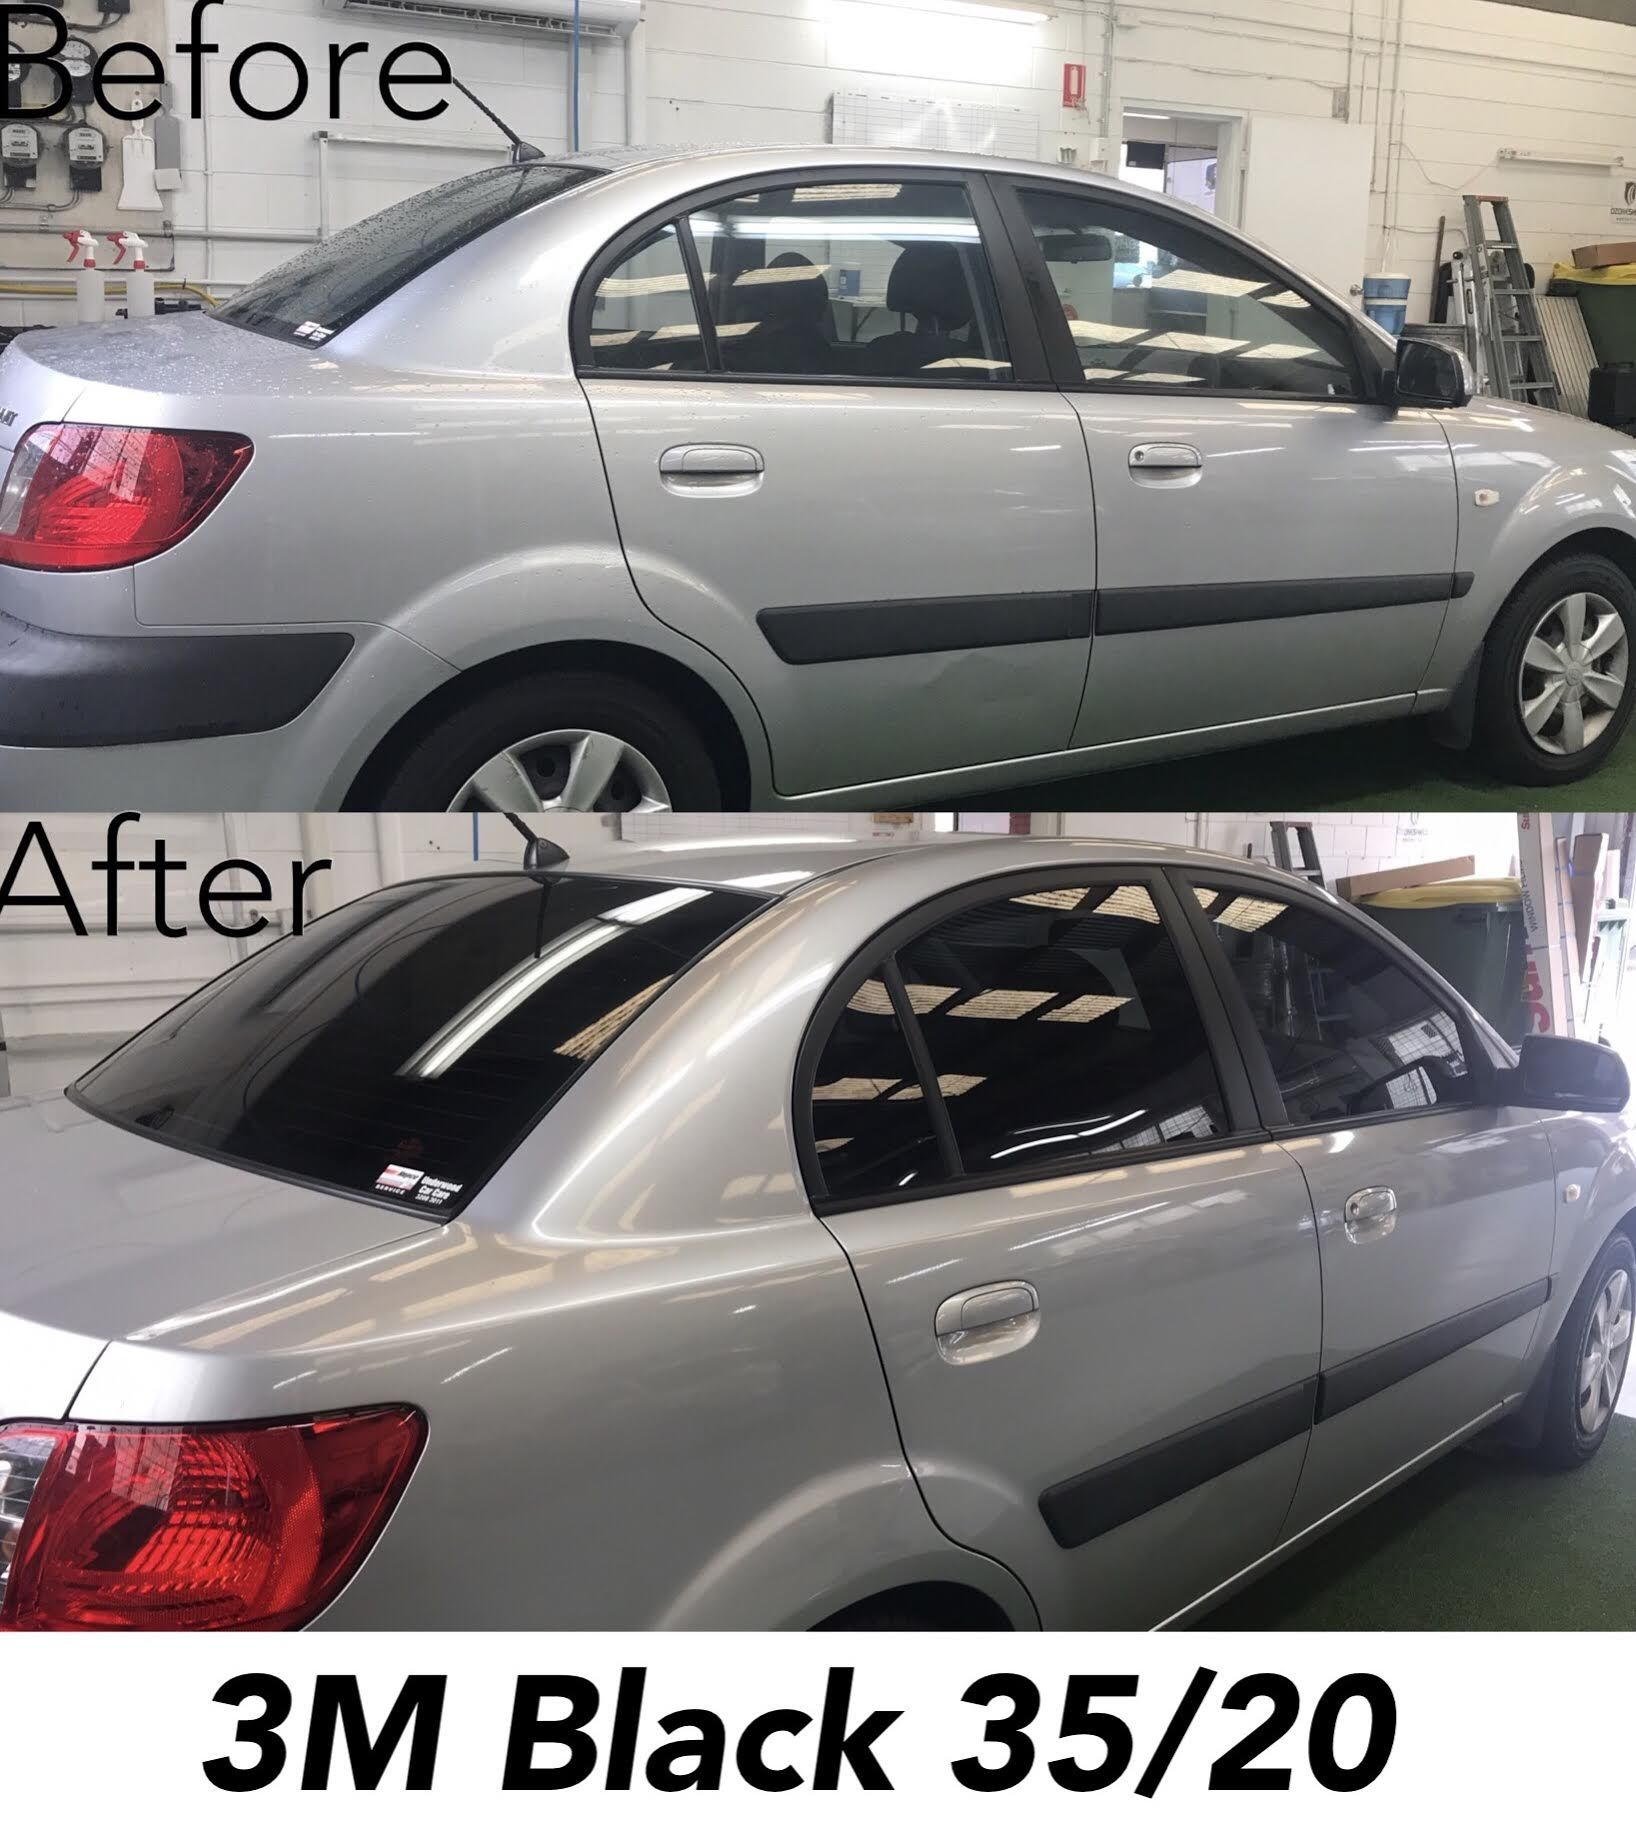 3m black window tint 3520 on kia rio before and after